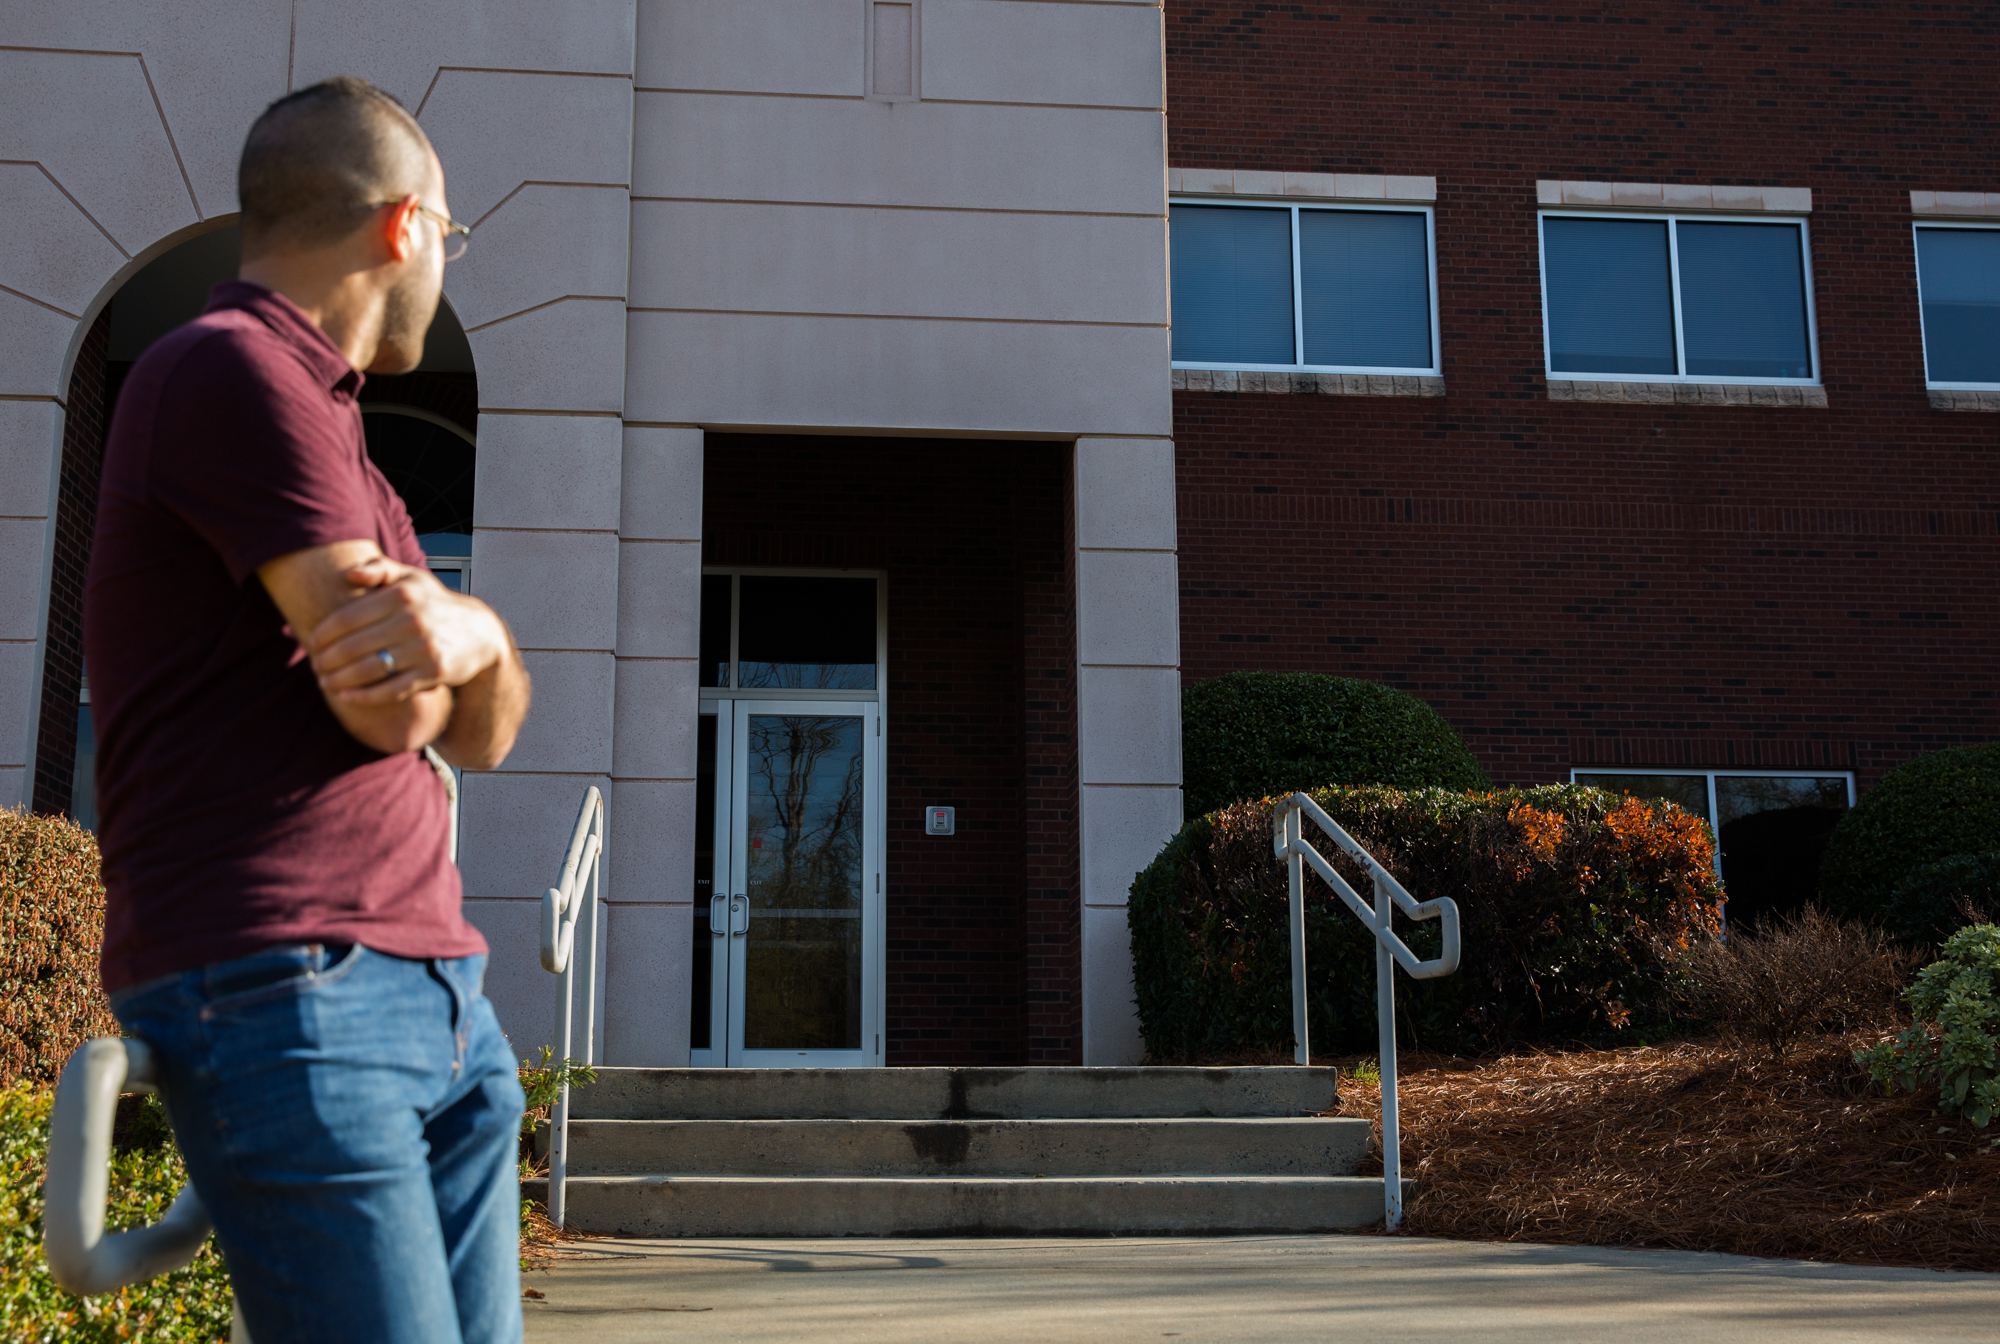 "On March 28, Mendoza had to go to the Department of Homeland Security in Charlotte for his Immigration and Customs Enforcement (ICE) check-in.  Although Mendoza has done nothing wrong and prepared all documents, there was a small chance that, during the check-in, he could be detained.  Vargas accompanied him for emotional support, but had to wait outside in anticipation as he was not allowed inside the building with Mendoza during the check-in.  Vargas was nervous during his husband's check-in, saying that last time ""only took five minutes.  I don't know why it's taking this long, but I'm just waiting for him to text me.  There were a lot of people in there."""